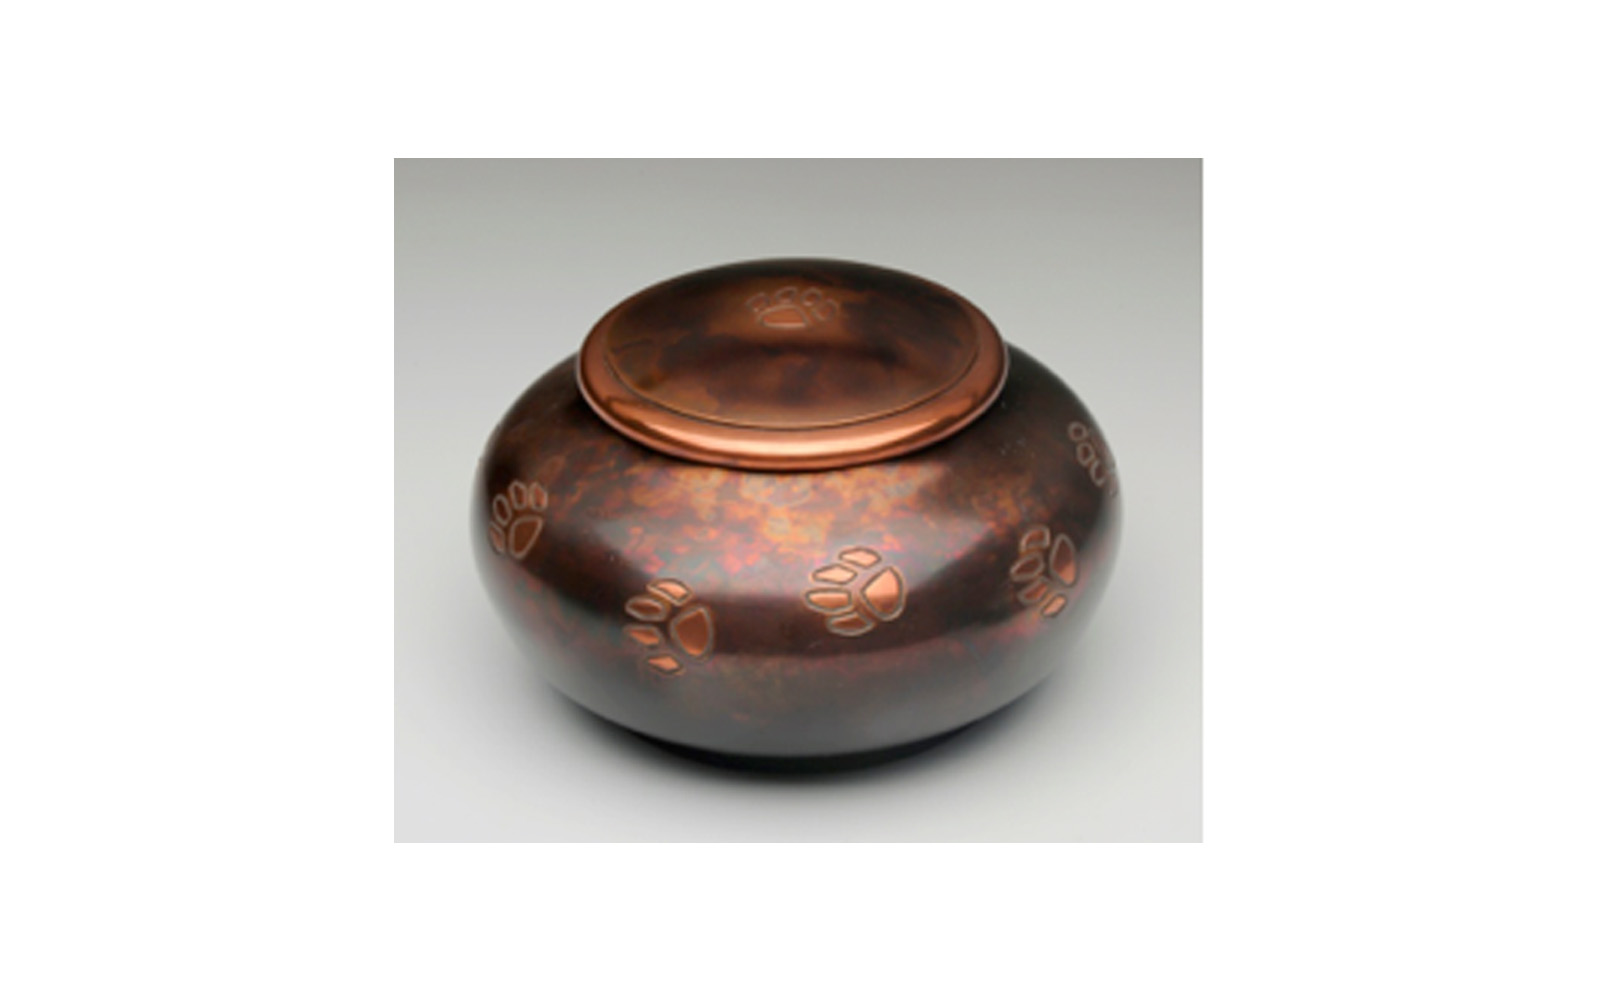 "Milano Raku Paw Print      Made of a Beautiful Brass with a Copper Overlay and a Raku Finish. This urn has a Threaded Lid and a Felt-Lined Base. This urn comes in Large, Medium, and Small sizes.     Large:  Measures 4.75"" L x 7.25"" W x 7.25"" H, 100 Cu. Inches, up to 95 lbs.,    $78      Medium:  Measures 4"" L x 6.5"" W x 6.5"" H, 70 Cu. Inches, up to 65 lbs.,    $60      Small:  Measures 5.5"" L x 5.5"" W x 3.25"" H, 45 Cu. Inches, up to 40 lbs.,    $50"